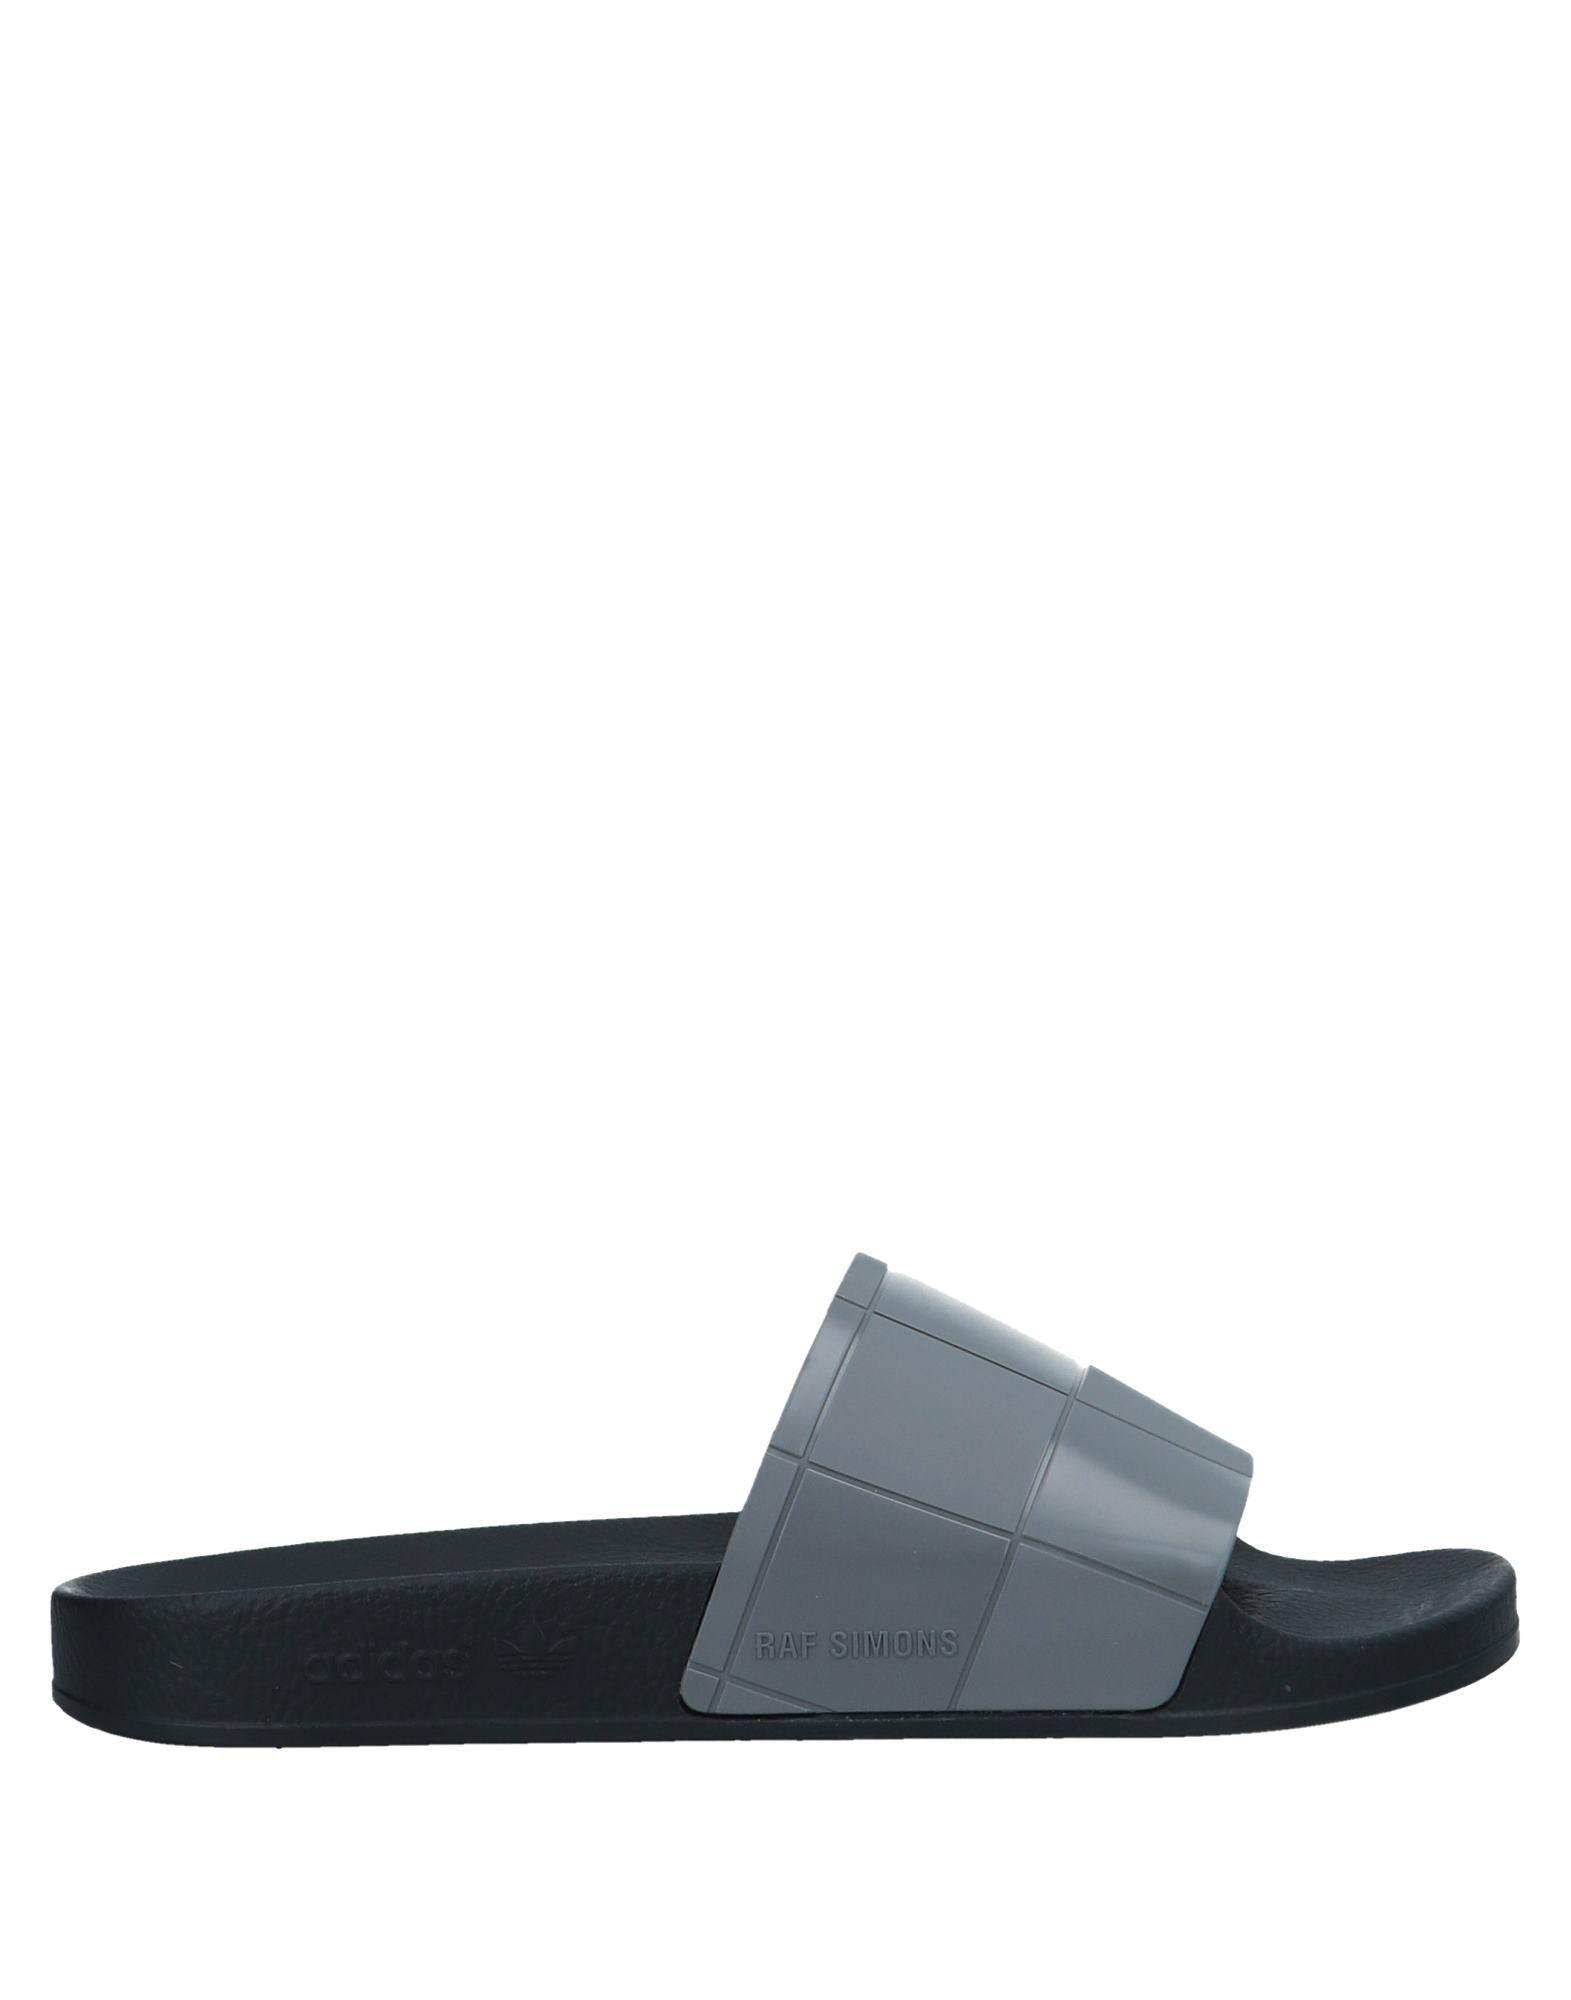 19a1cce93 Lyst - adidas By Raf Simons Sandals in Gray for Men